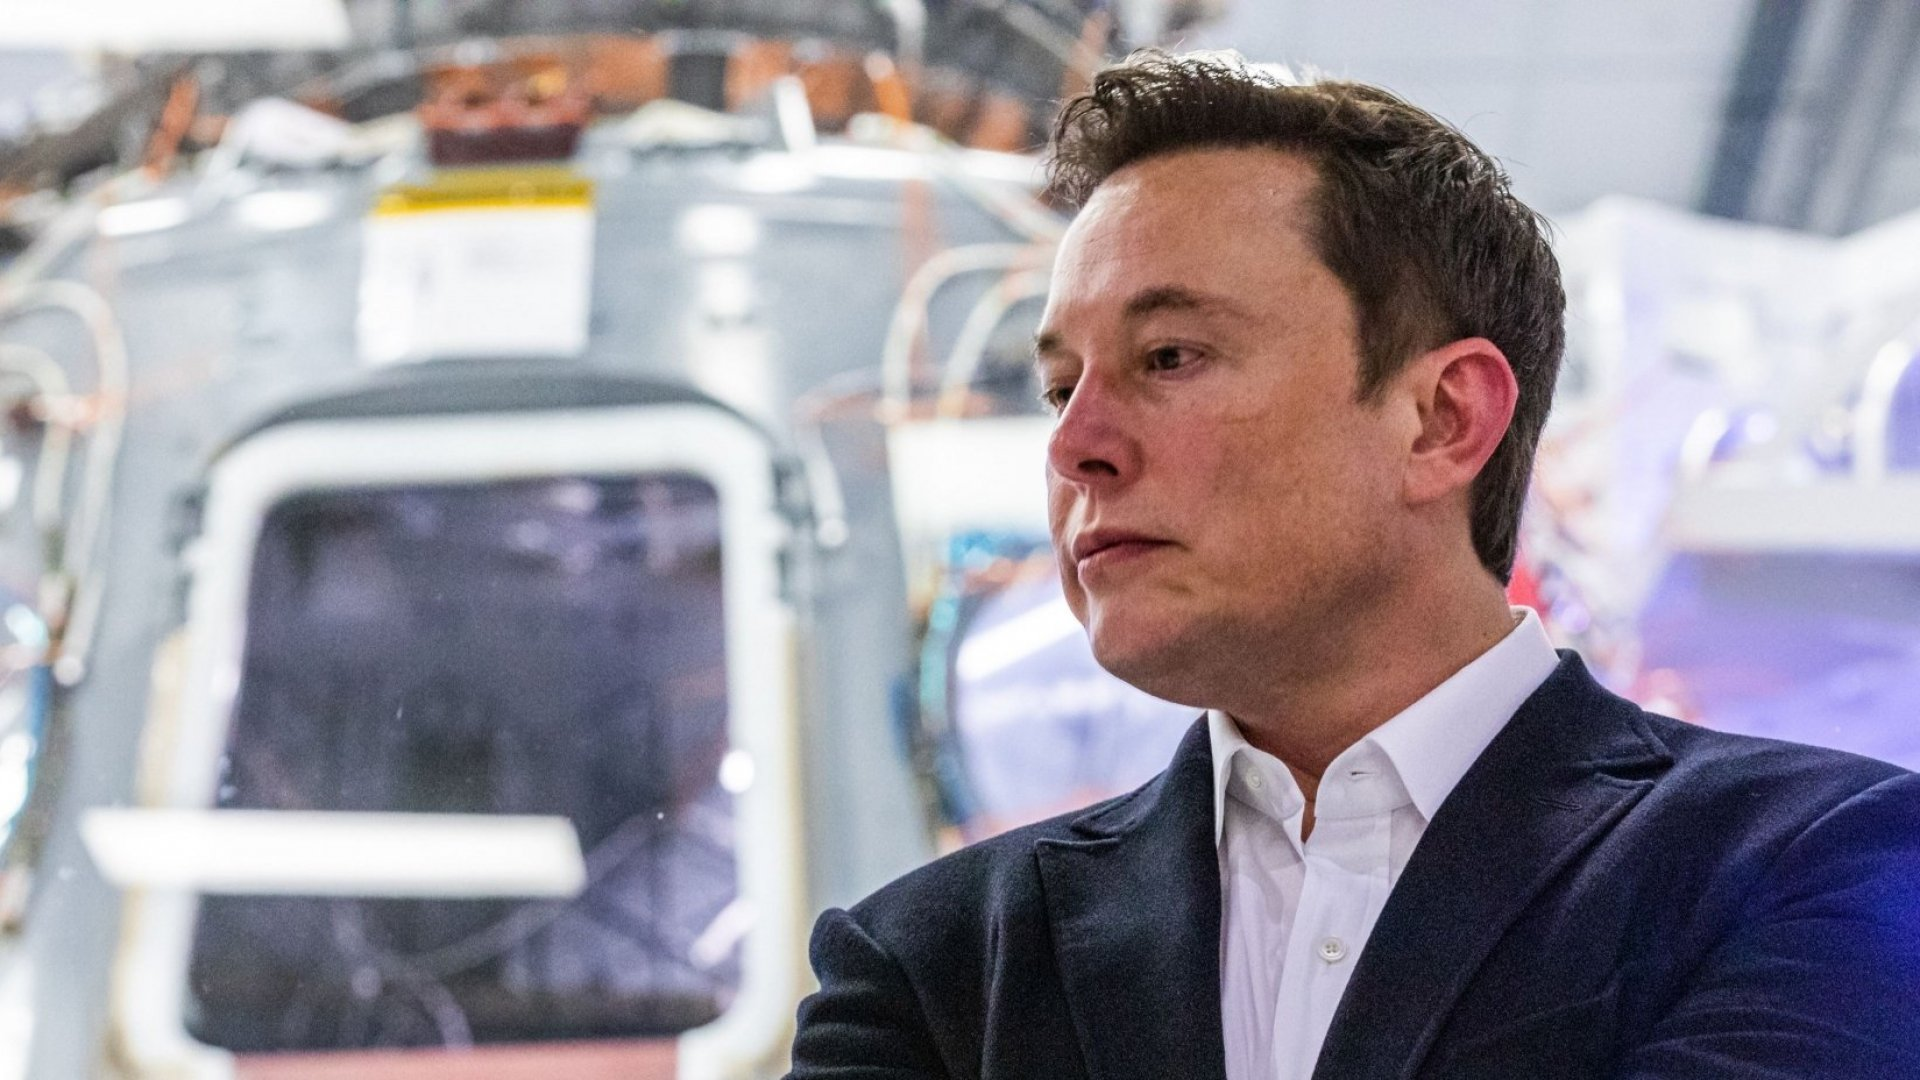 Intelligent Minds Like Elon Musk and Jeff Bezos Seek to Master This Crucial Skill. You Can Too